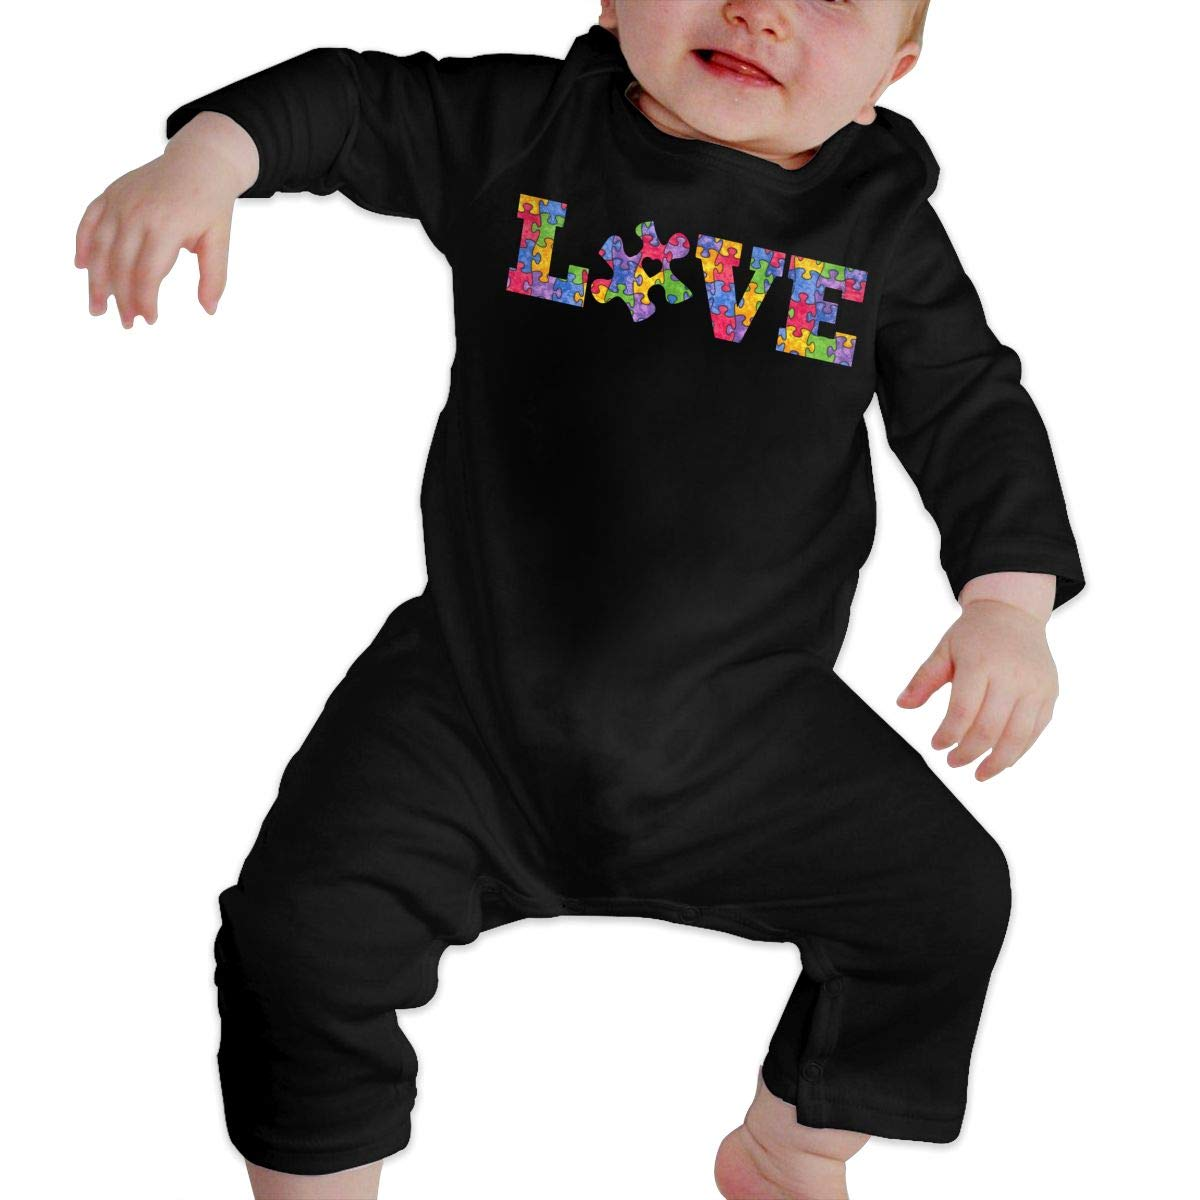 I Love Someone with Autism Infant Baby Boys Girls Crawling Suit Short-Sleeve Romper Bodysuit Onesies Jumpsuit